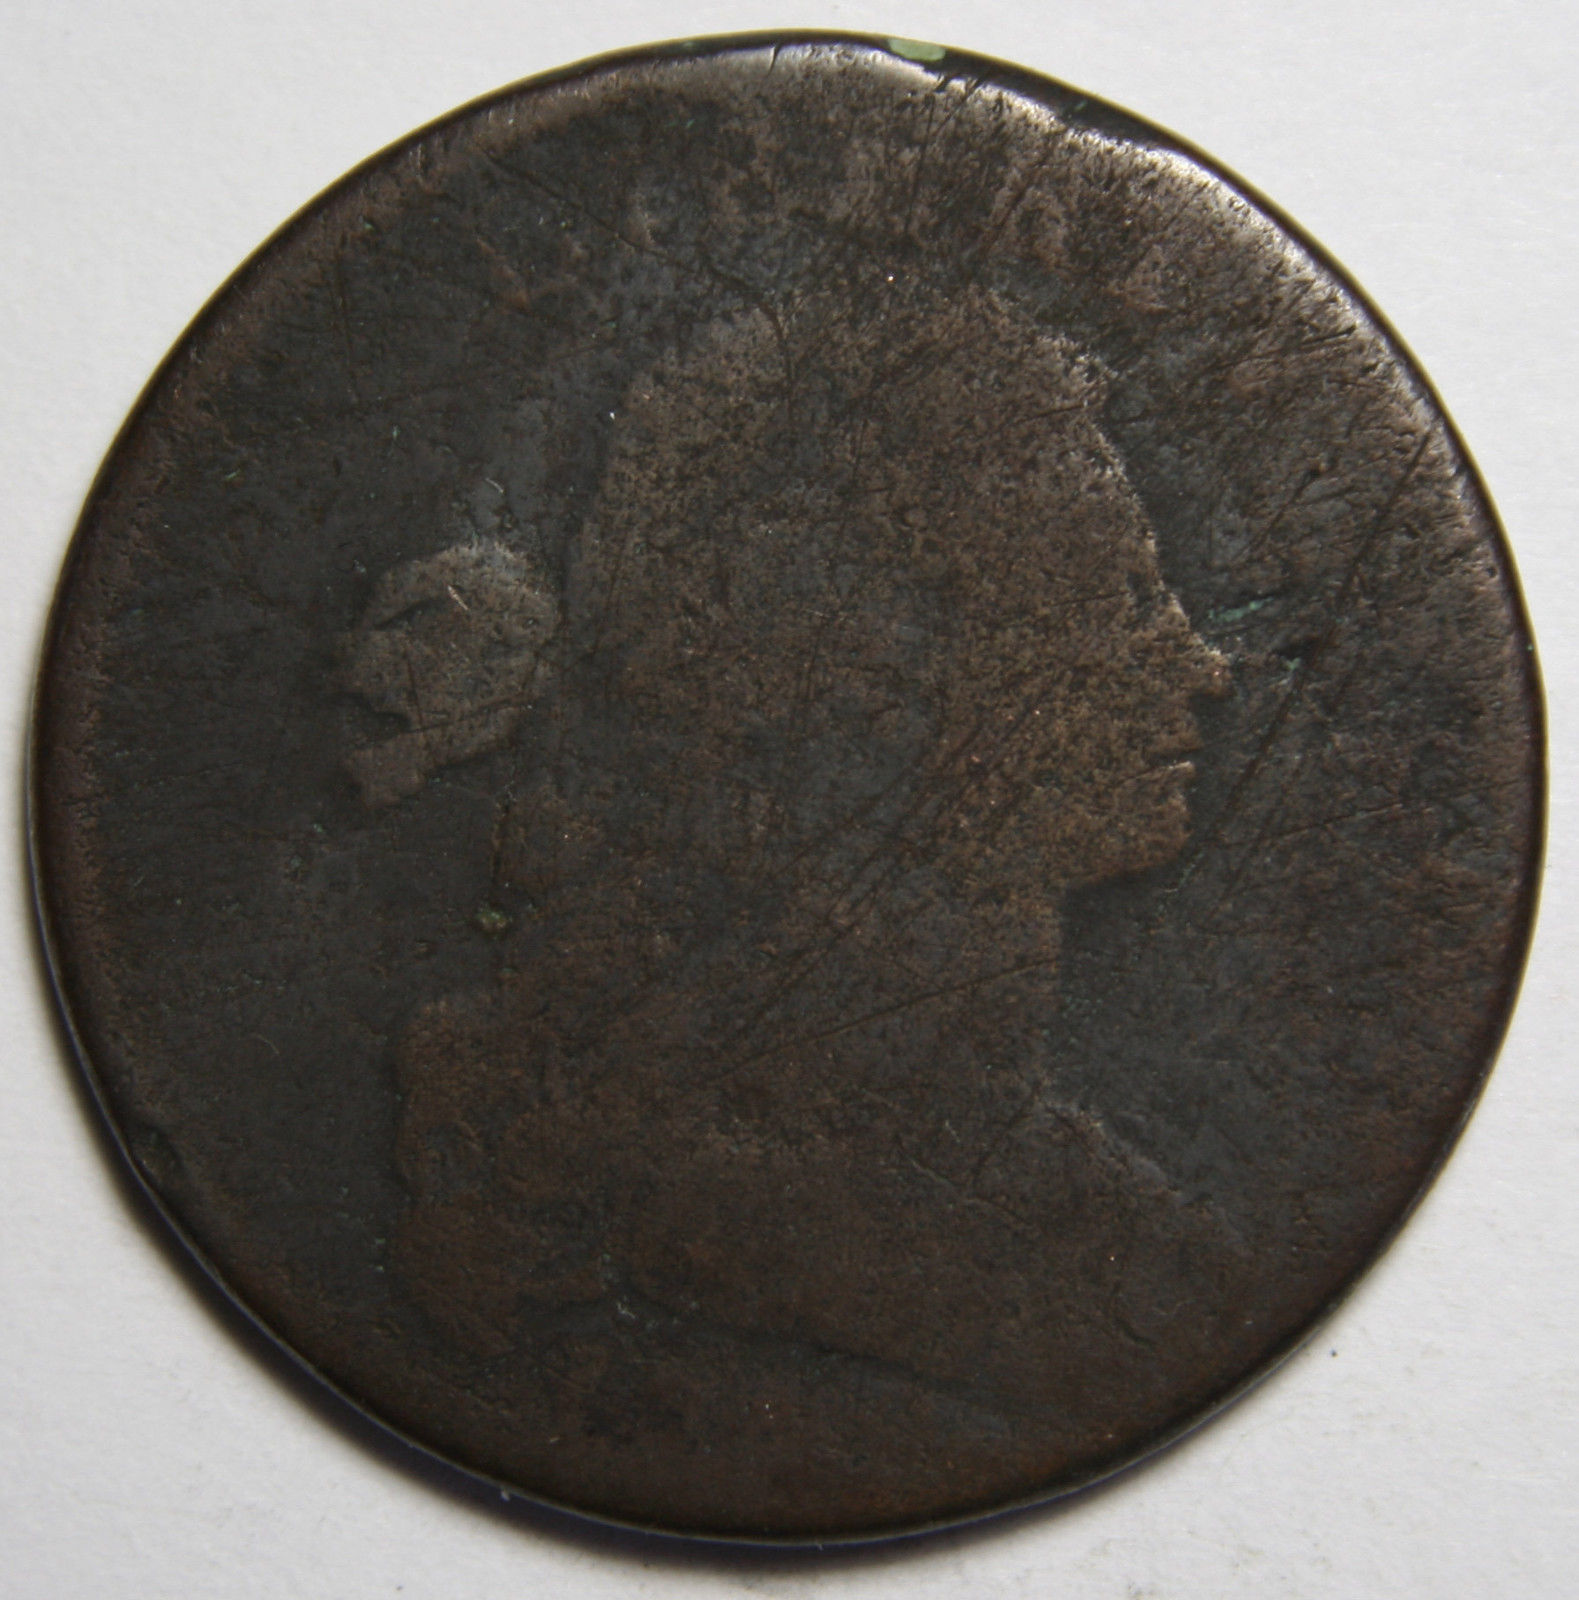 1798 Sheldon 166 Draped Bust Large Cent Coin Lot# MZ 4079